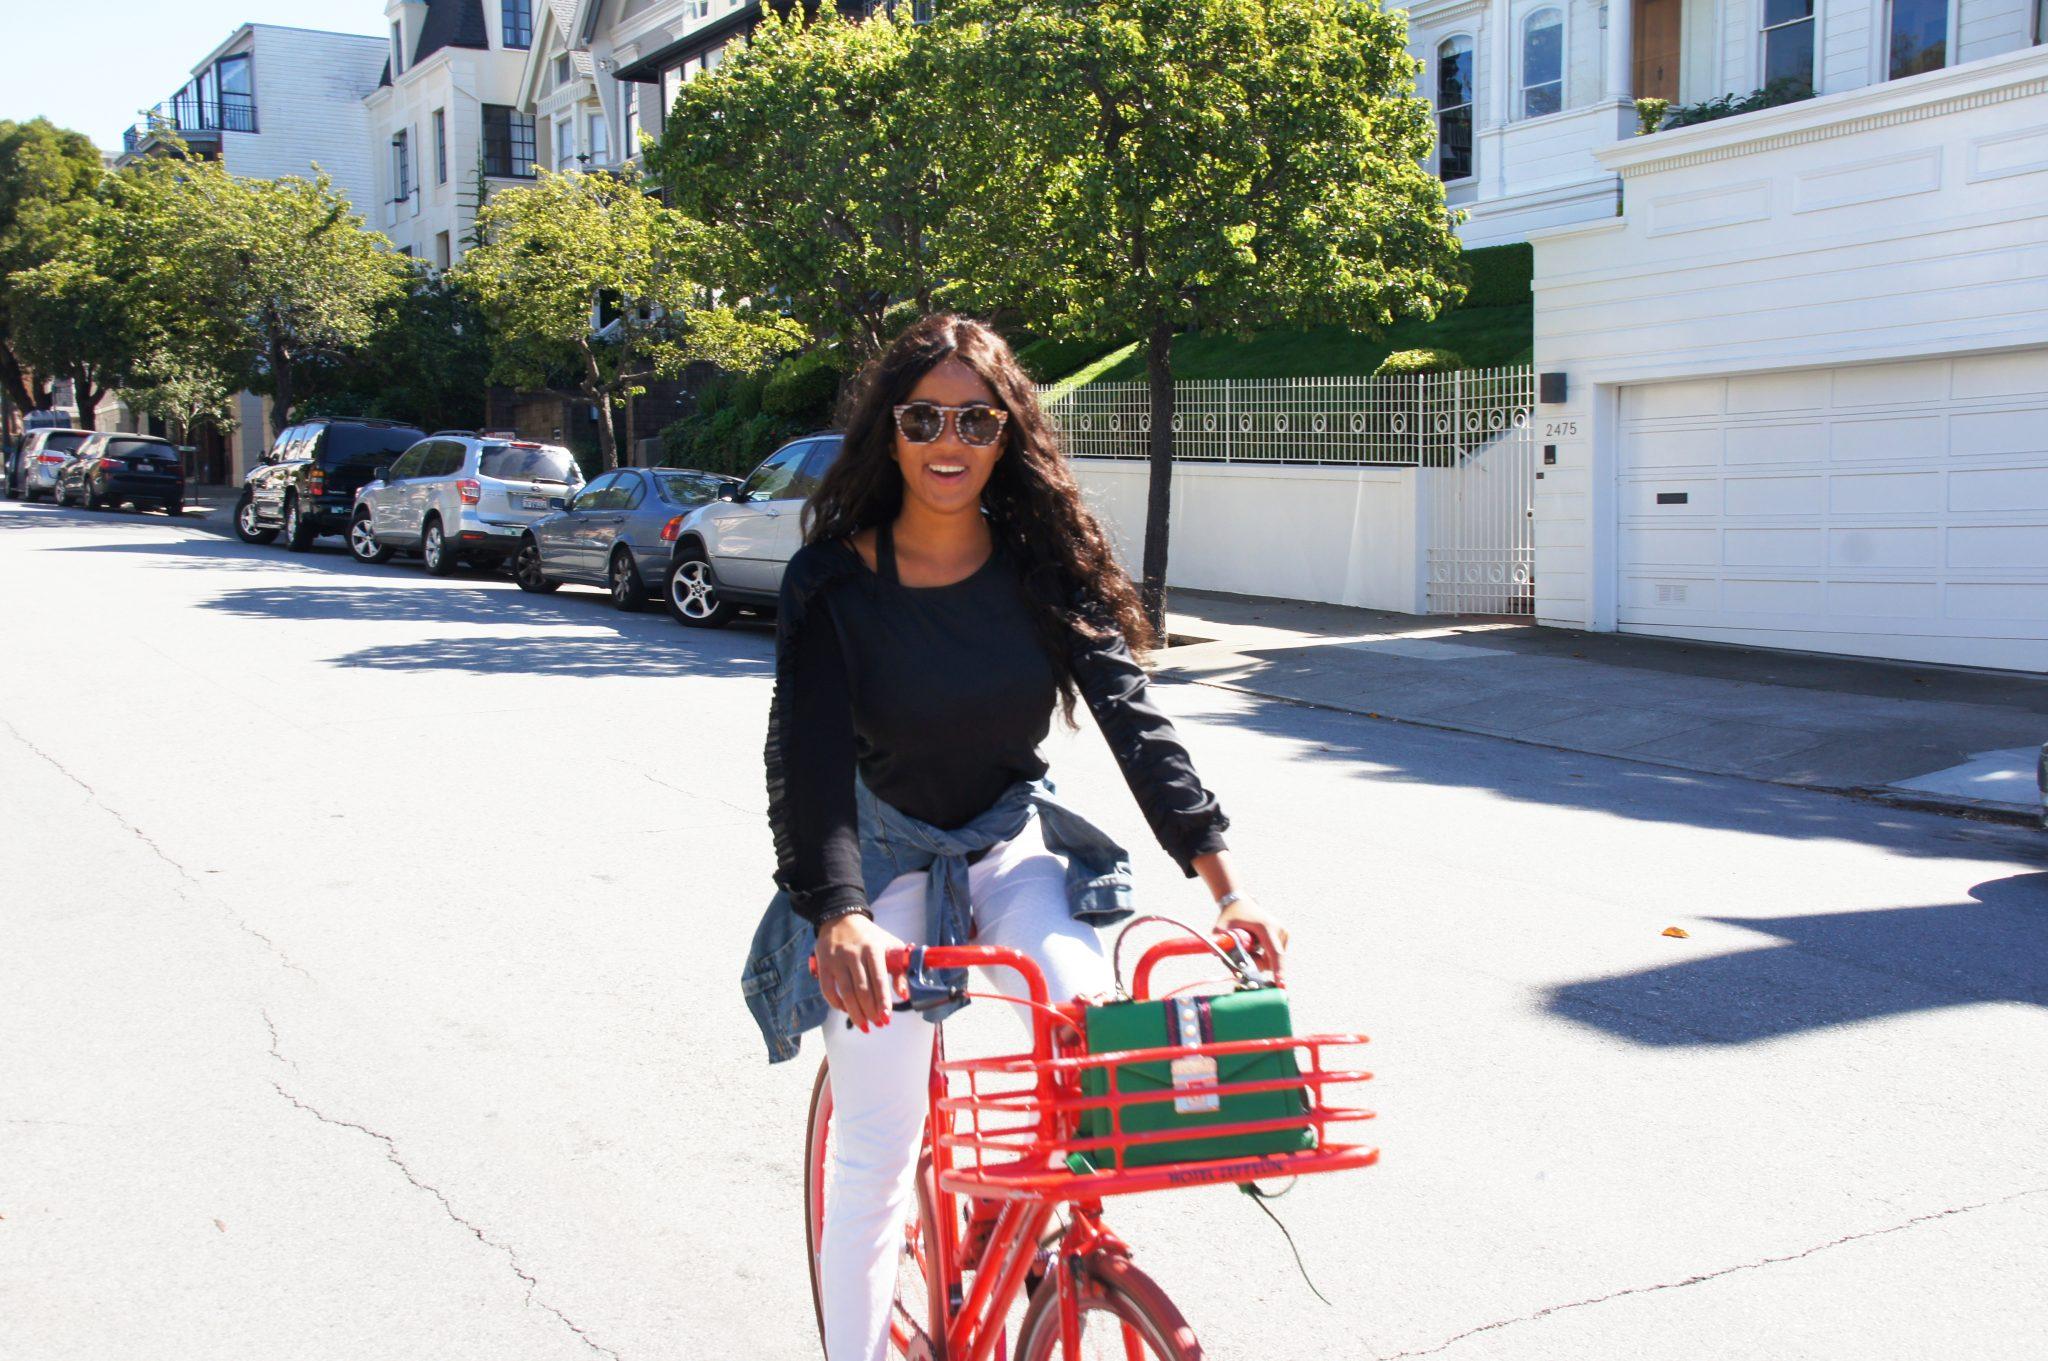 Me on the red bike